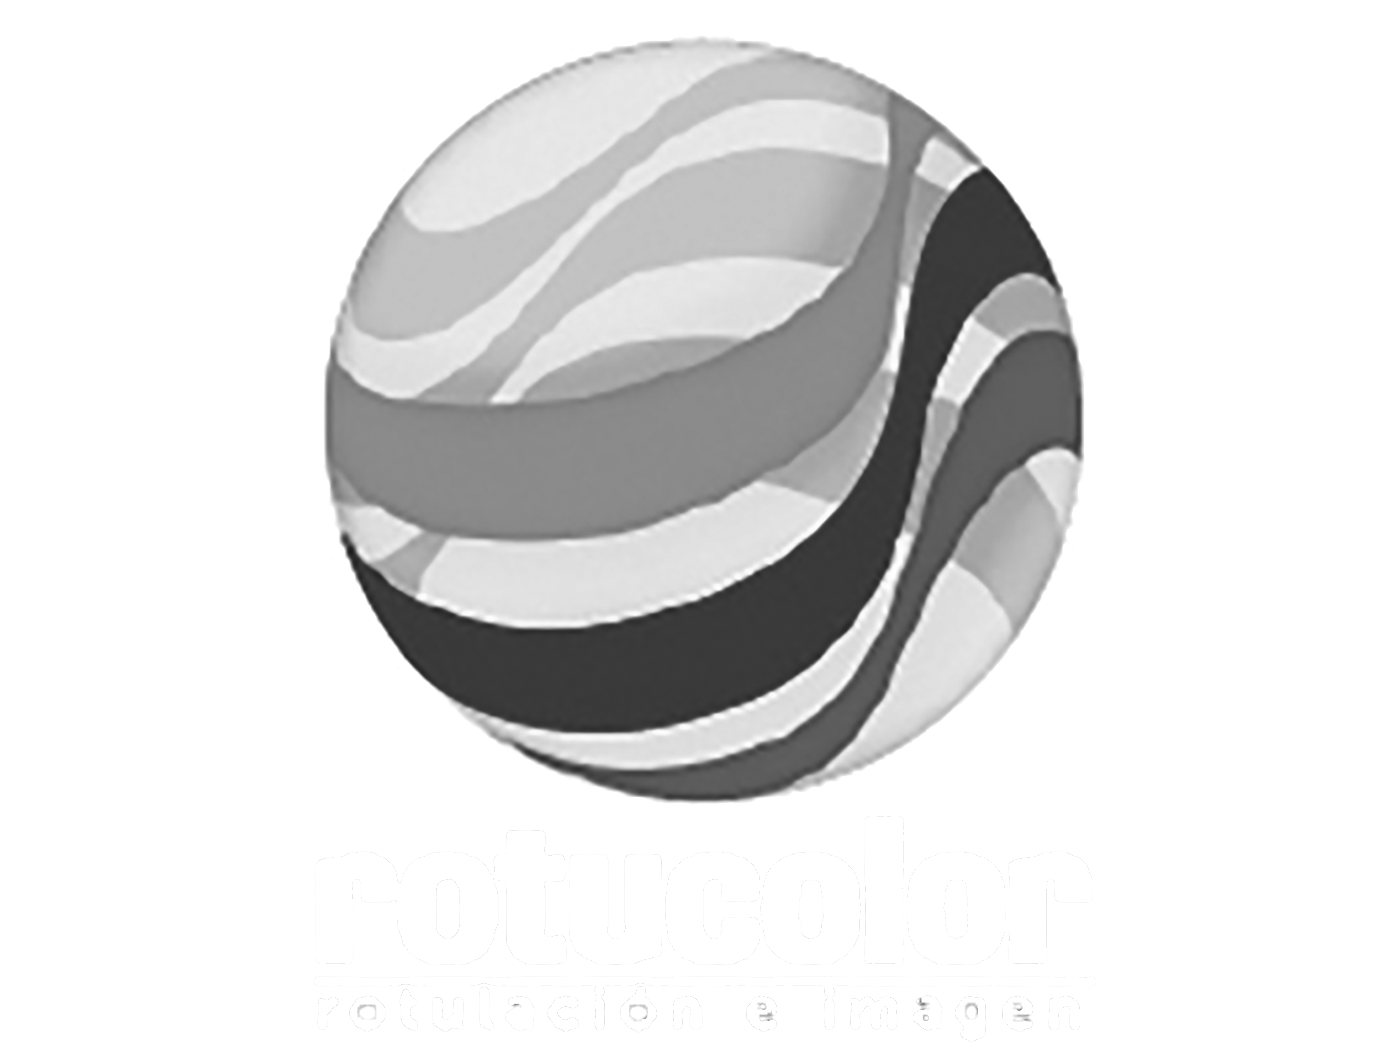 Rotucolor